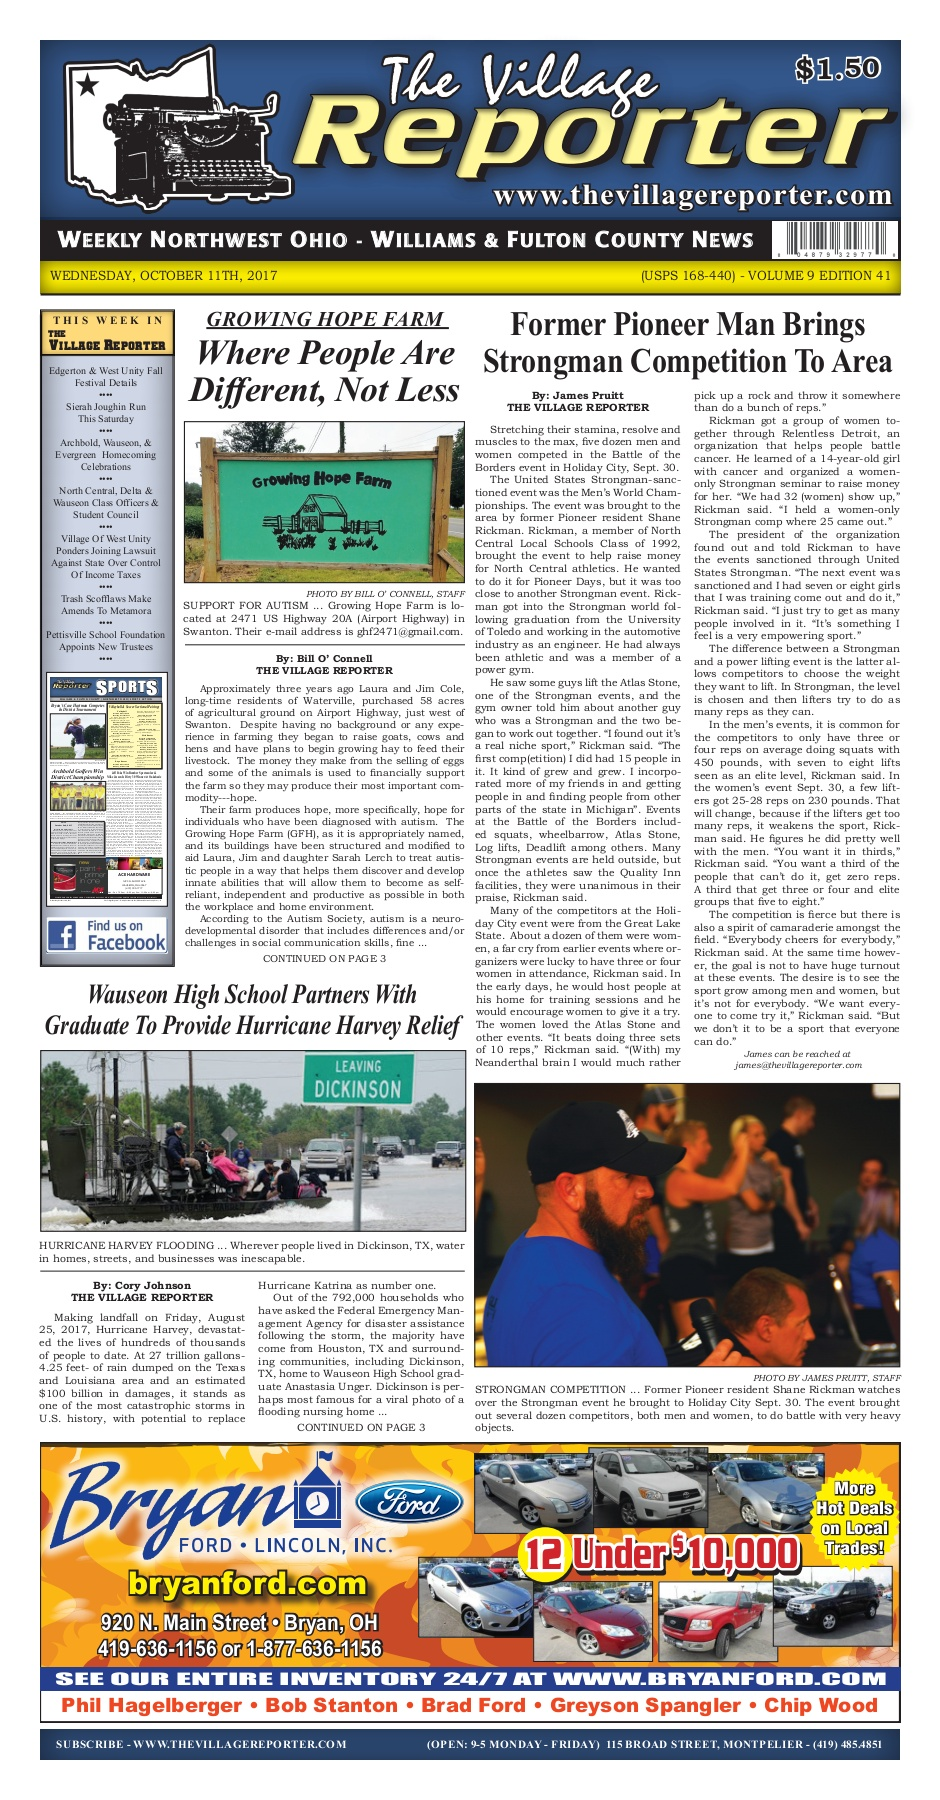 The Village Reporter - October 11th, 2017 Pages 1 - 44